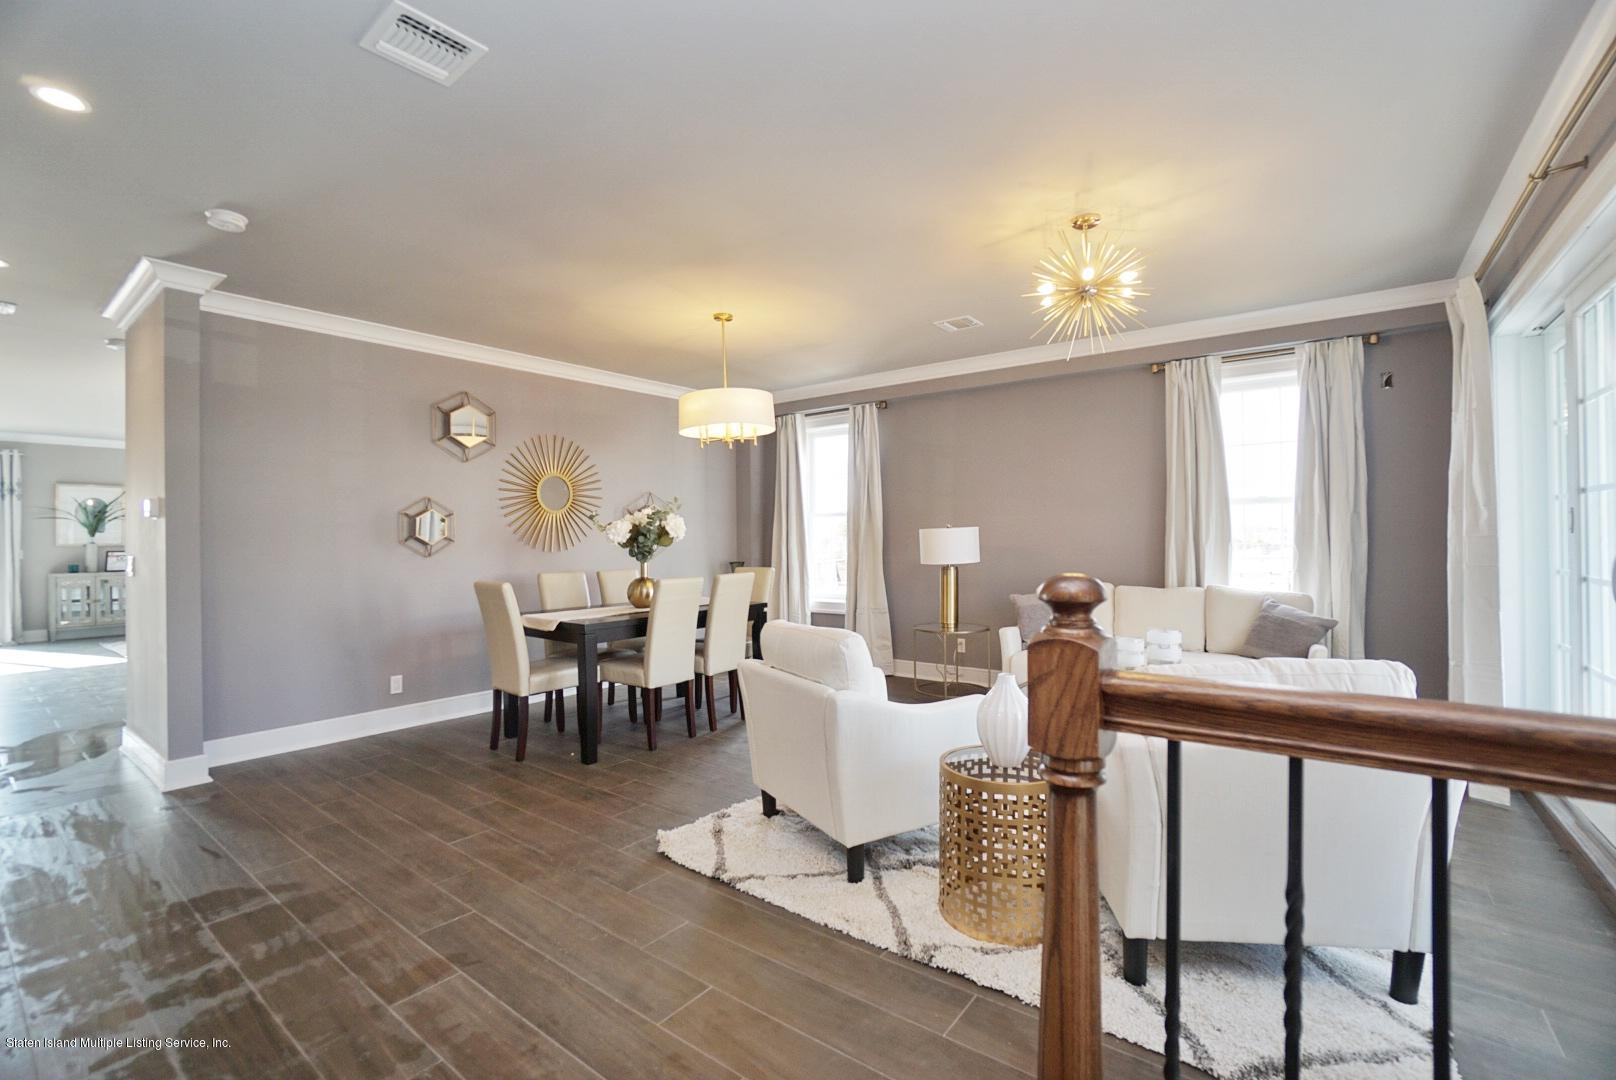 Single Family - Detached 26 Purdy Place  Staten Island, NY 10309, MLS-1129505-4